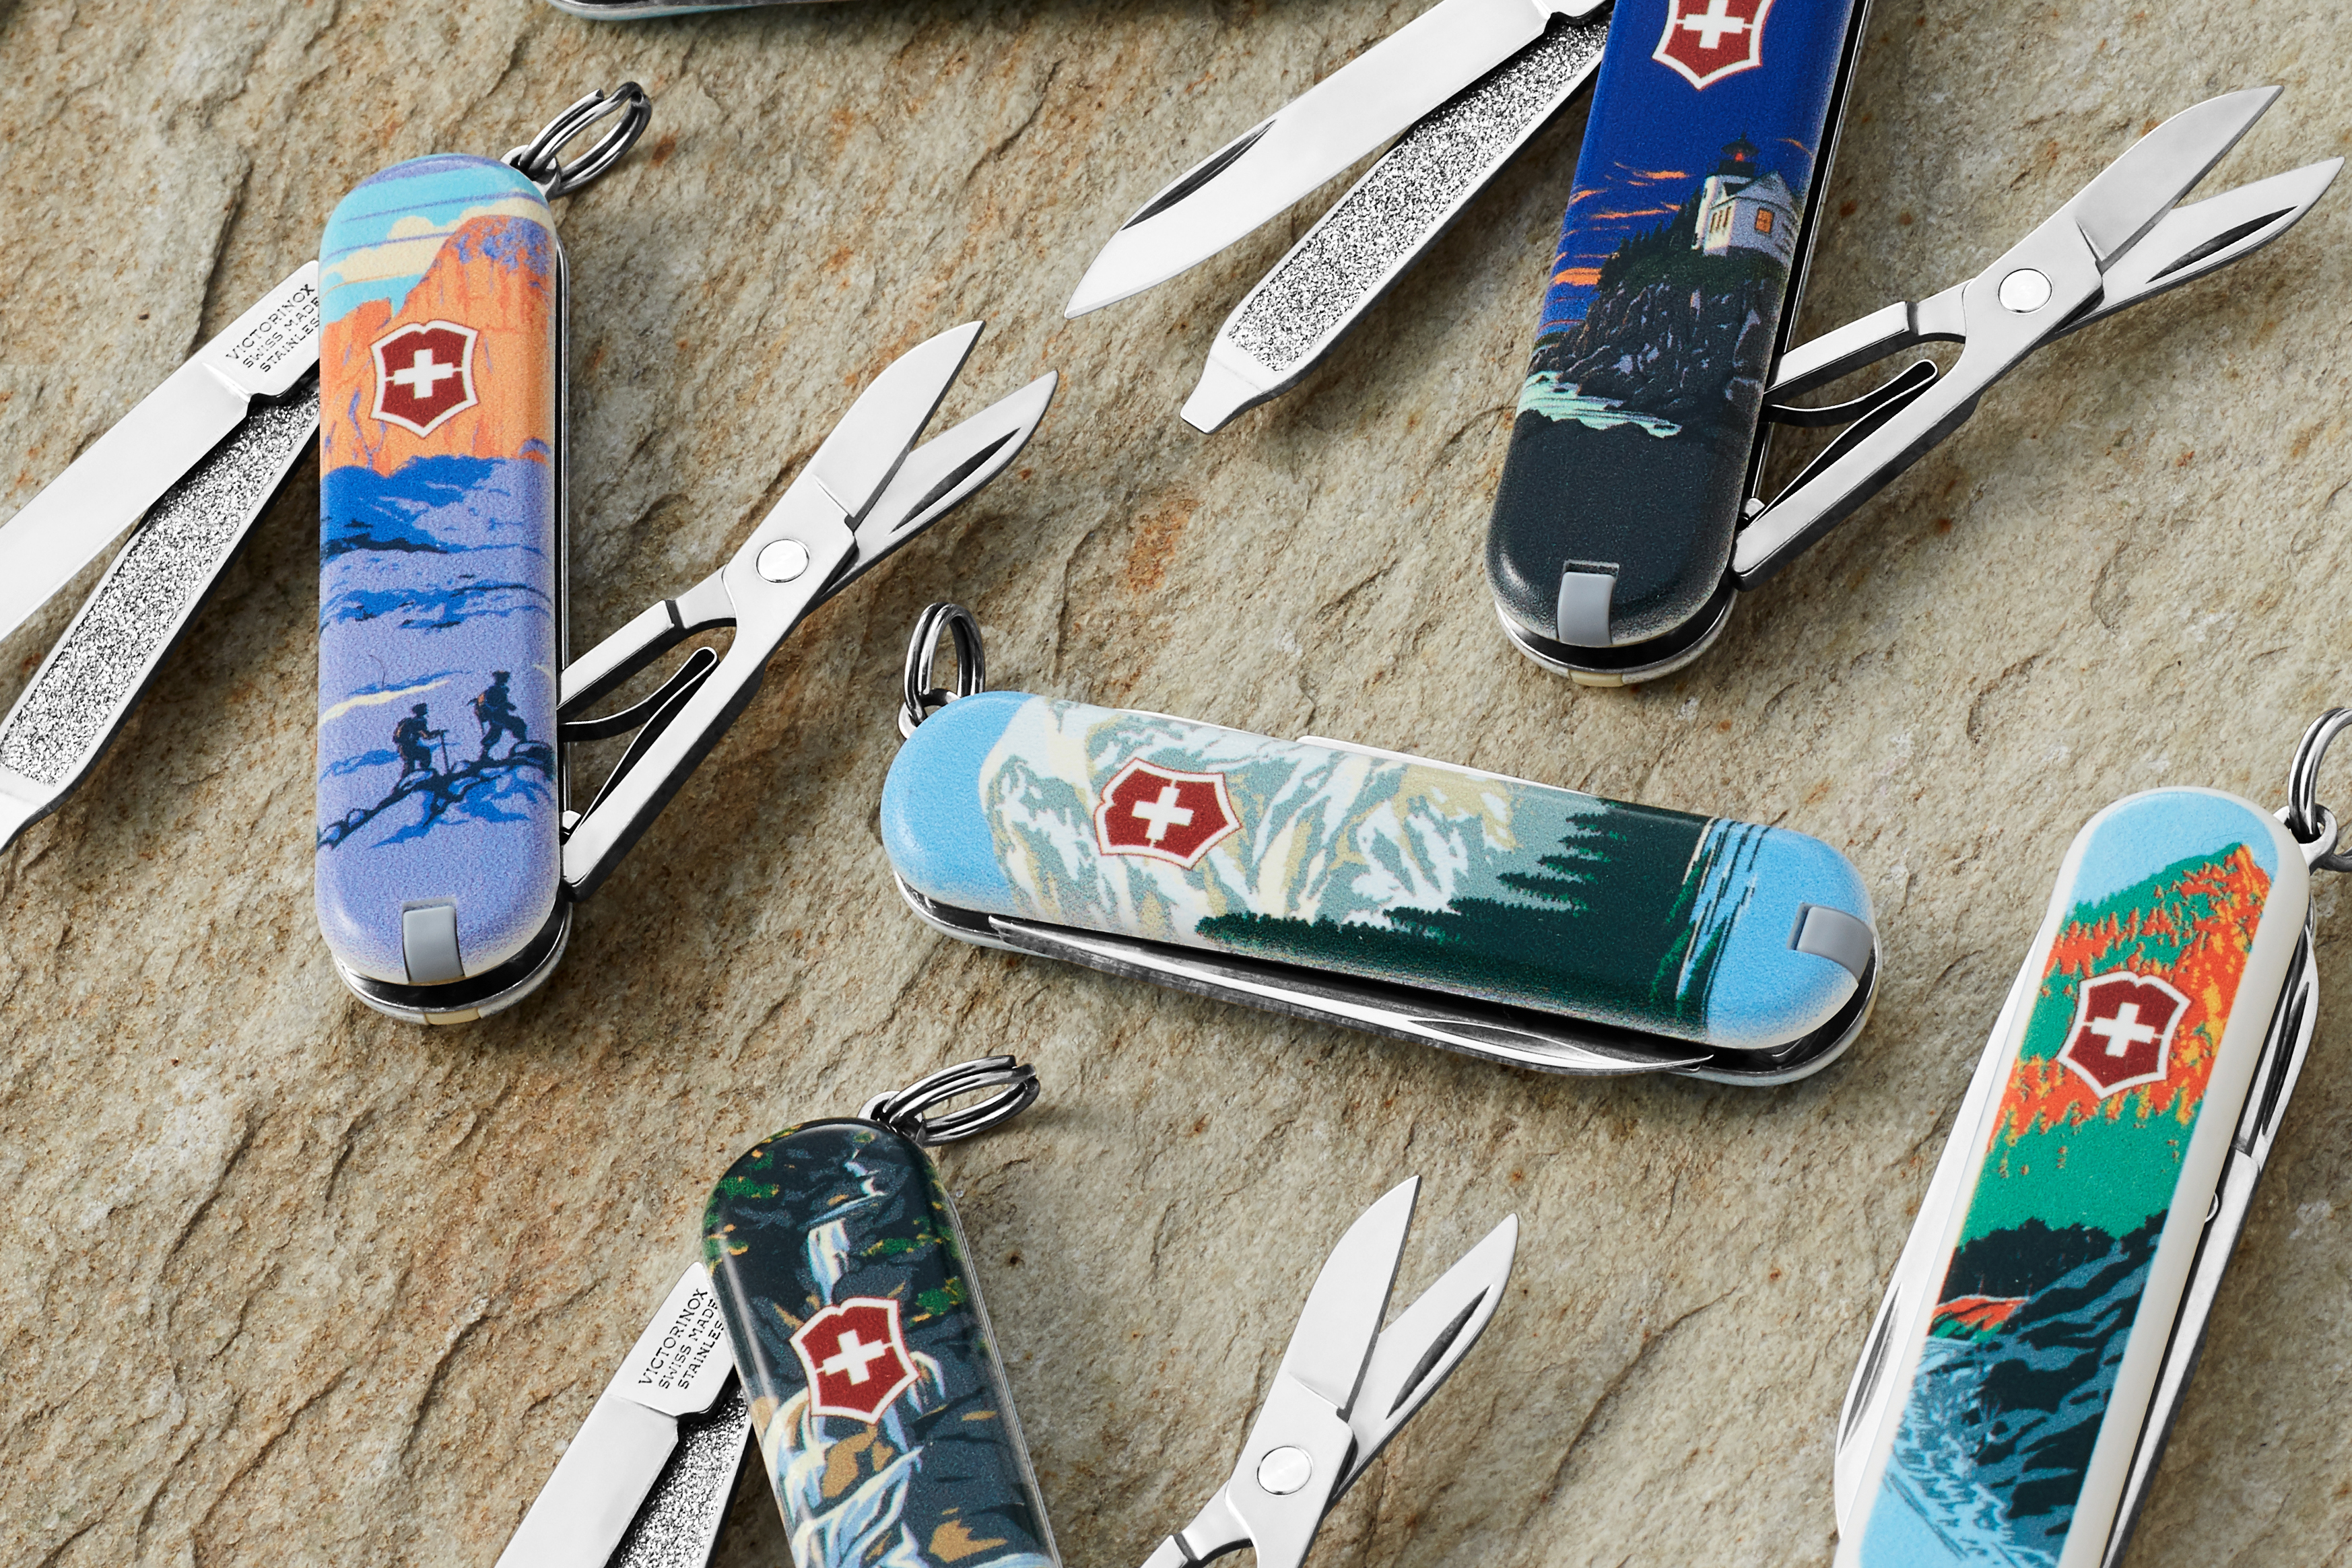 Victorinox Launches 'Lost Art' National Park Knives